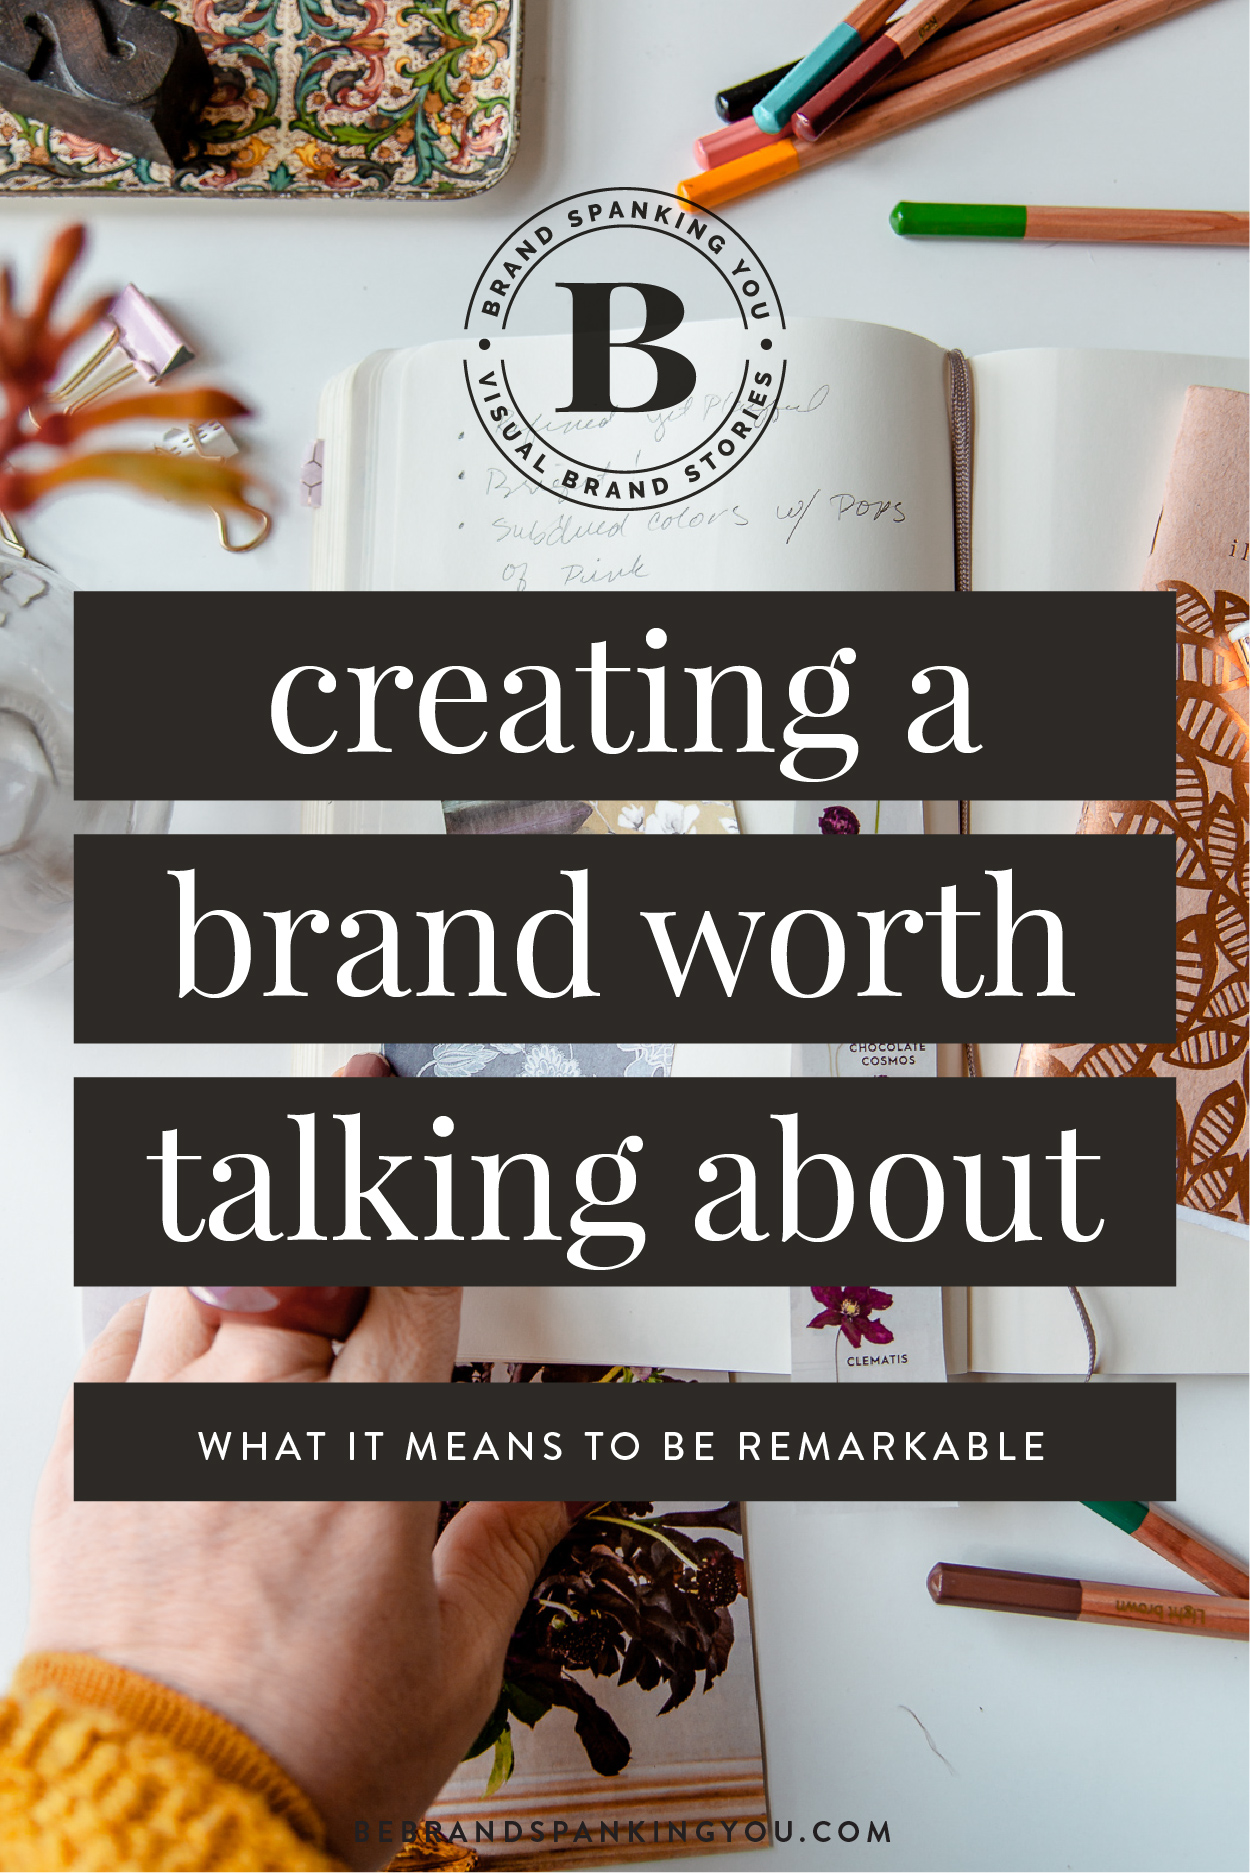 Every wonder how to create a brand worth talking about? The first step is to be remarkable. This post will show you how.